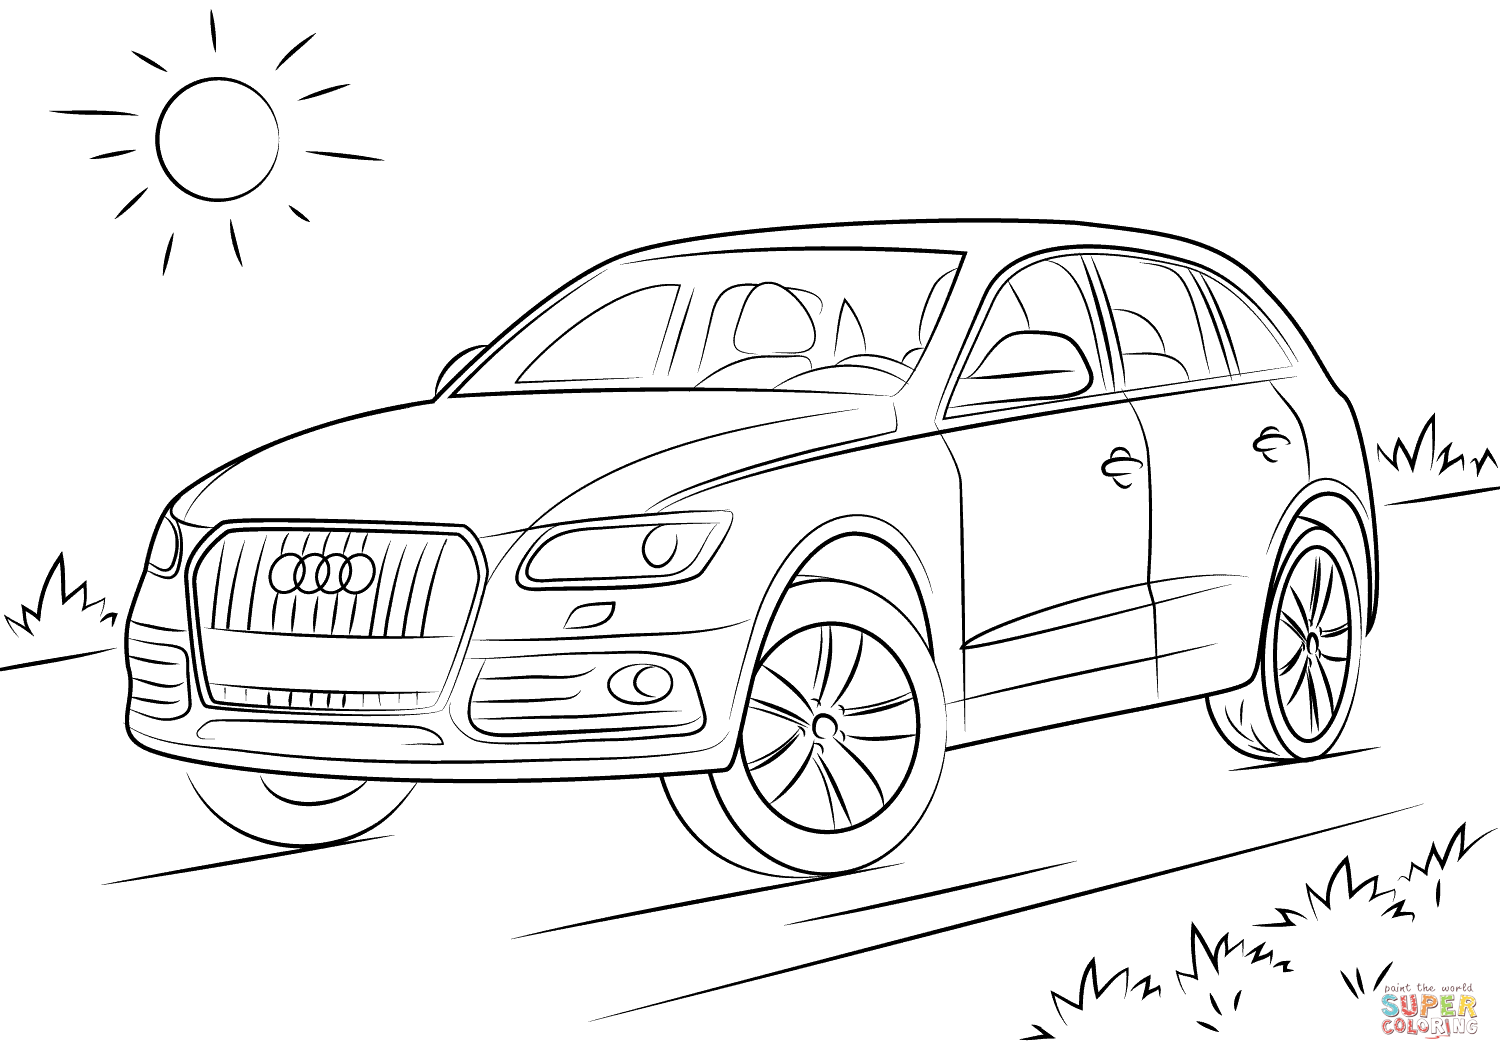 audi coloring pages audi coloring pages free printable audi coloring pages audi pages coloring